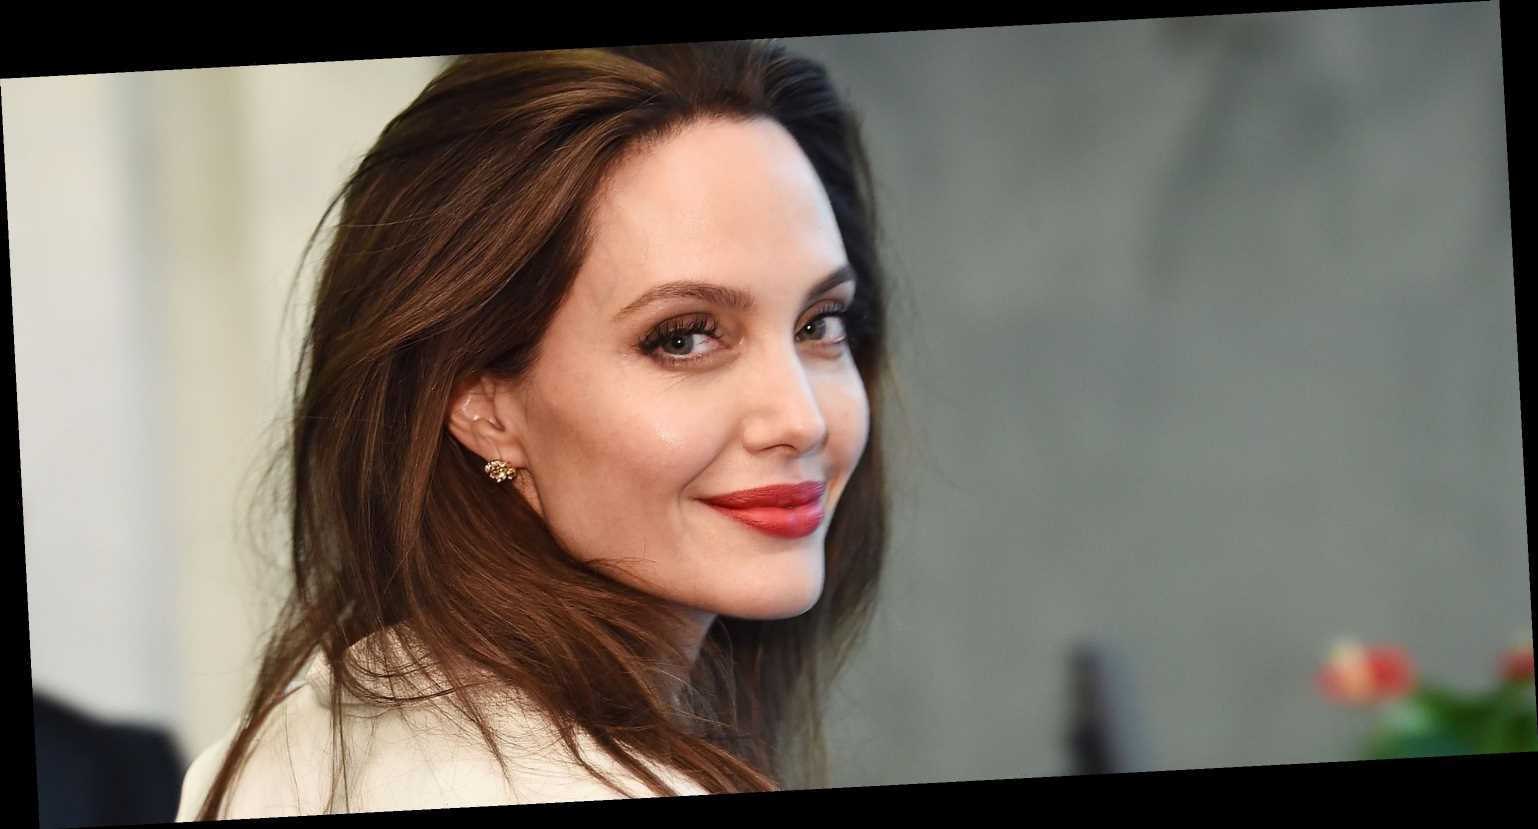 Angelina Jolie Sells Painting Brad Pitt Gave Her for $11.5 Million